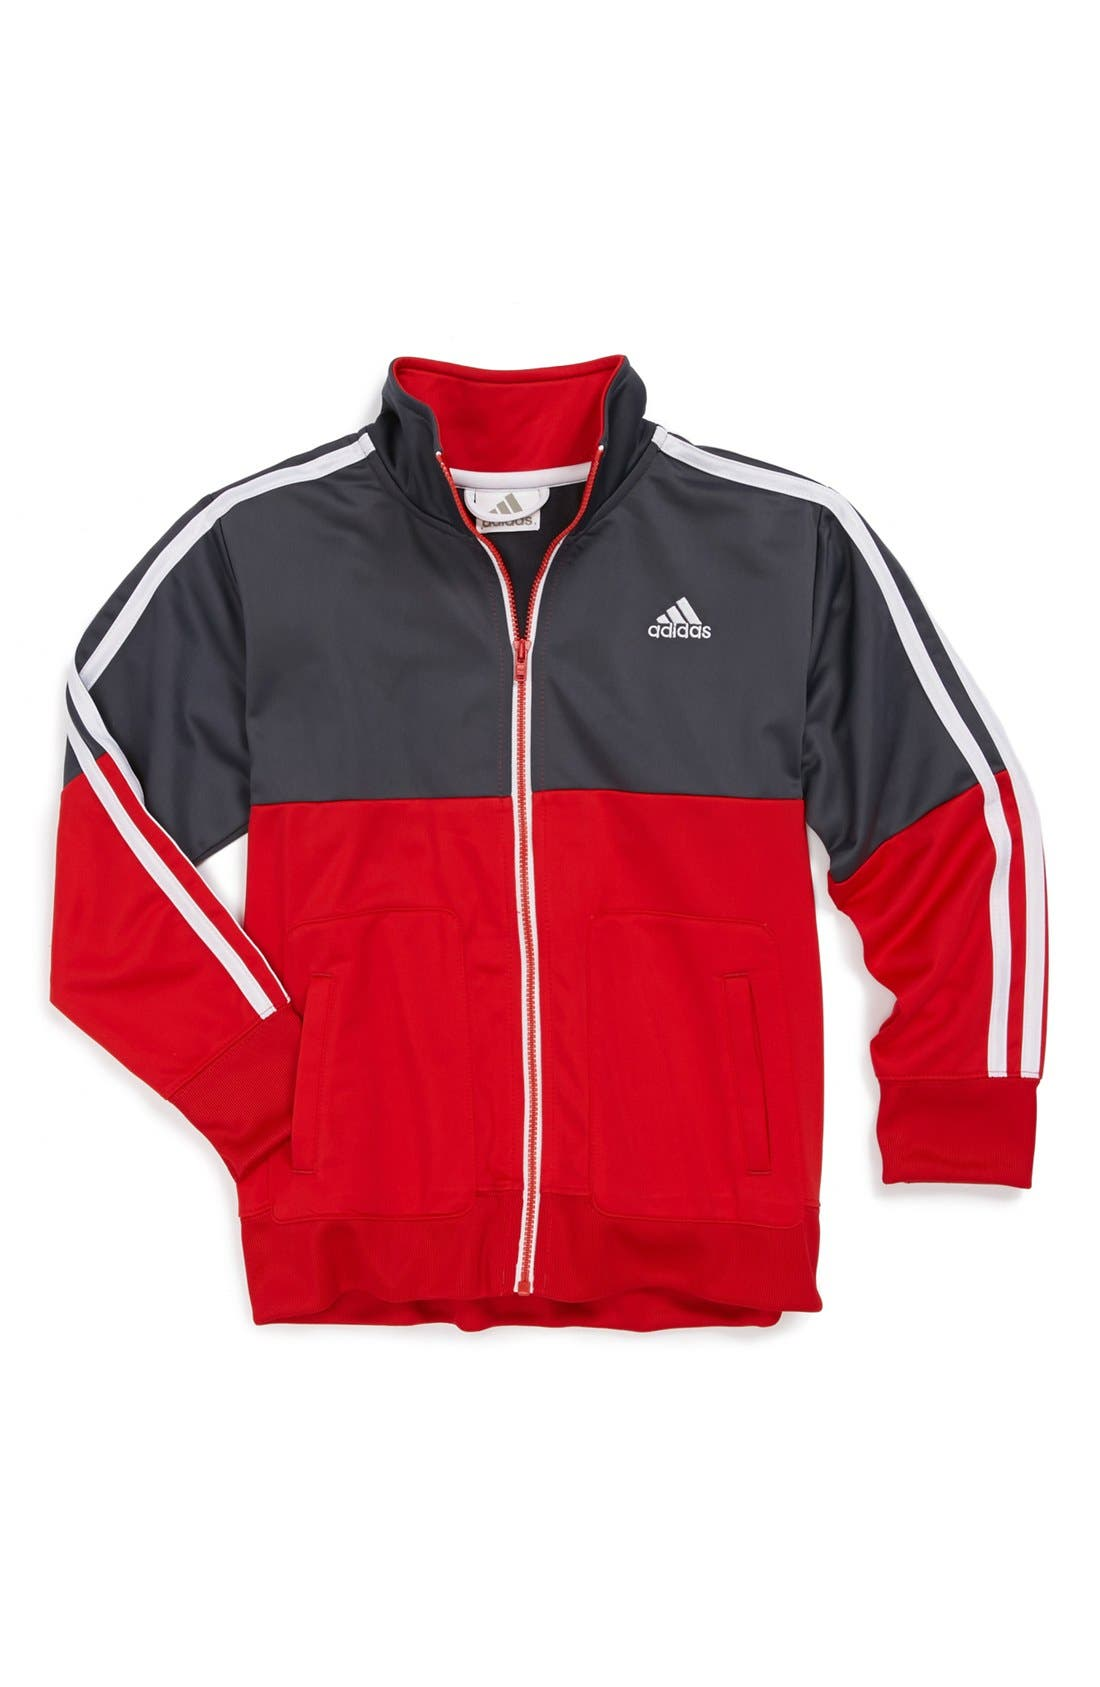 Alternate Image 1 Selected - adidas 'Divide & Conquer' Tricot Jacket (Little Boys)